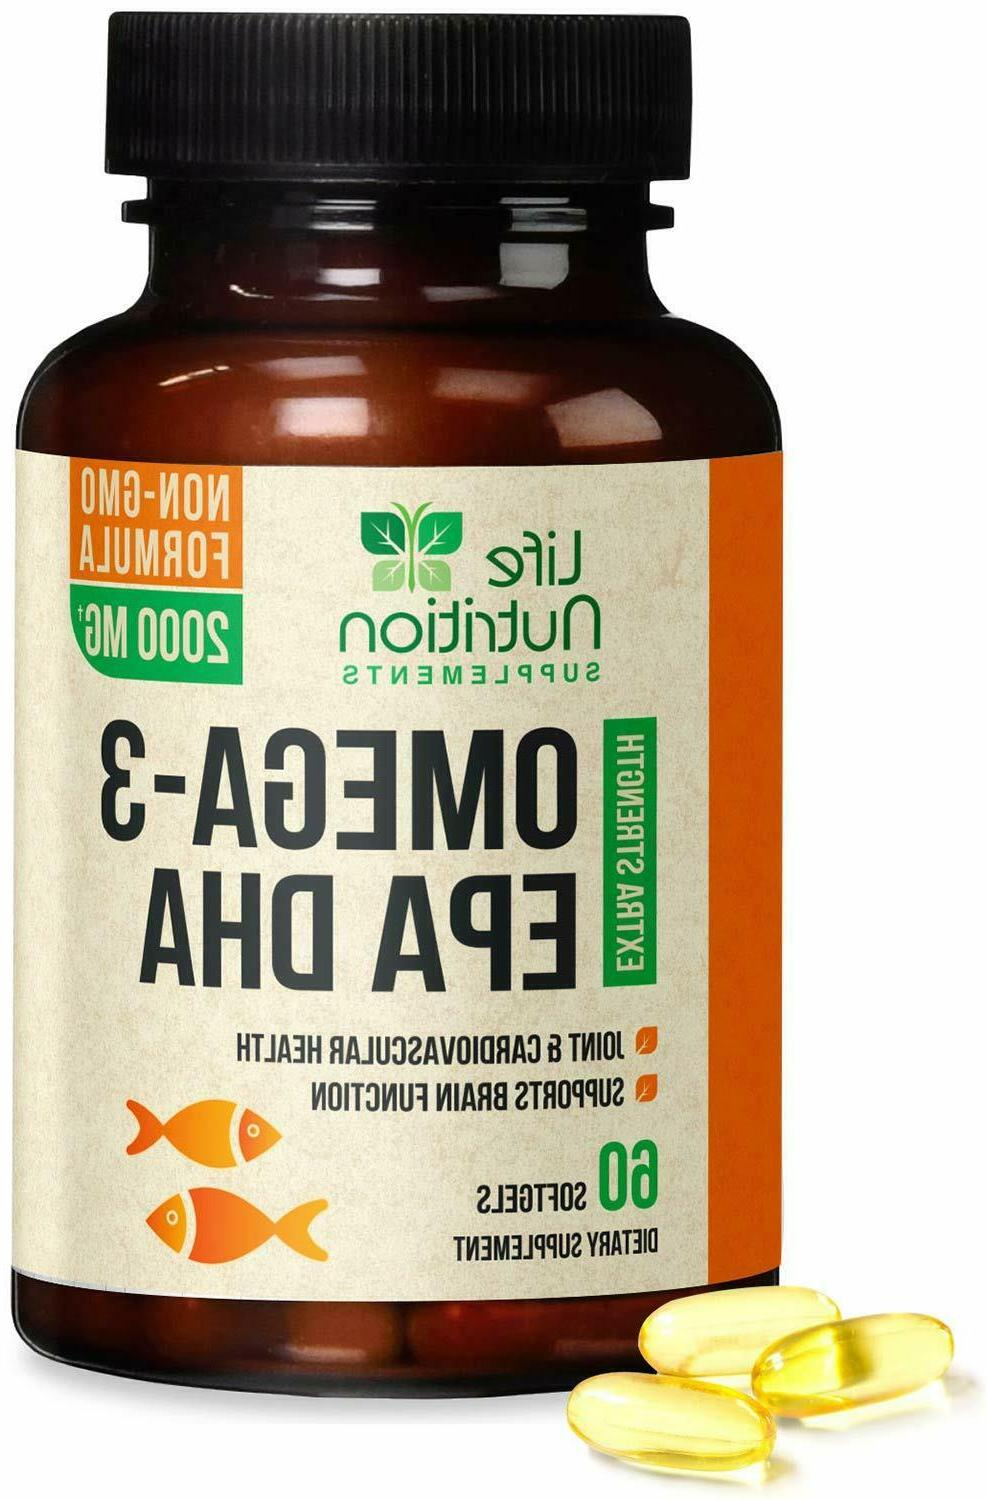 Omega 3 Oil Capsules Triple Strength EPA DHA - 60